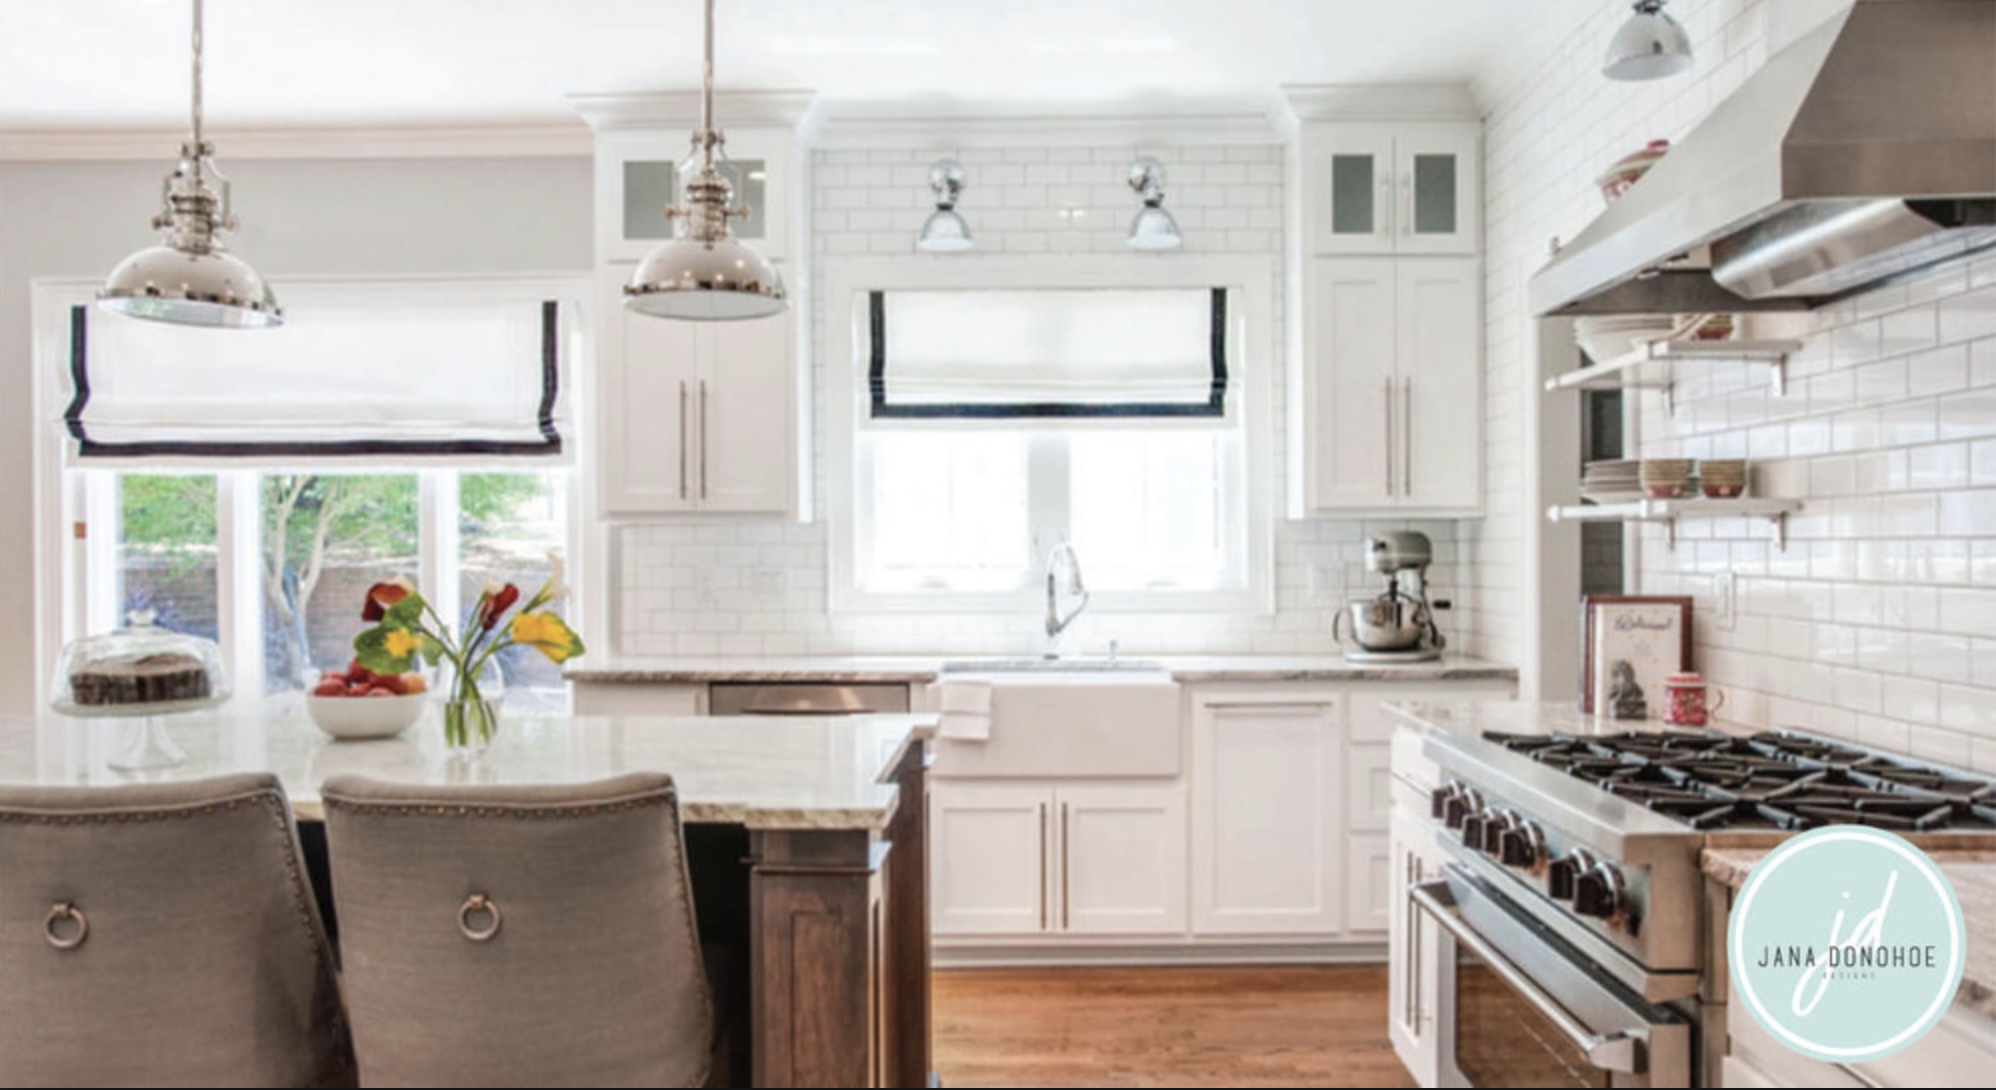 I love that my clients are enjoying their new kitchen so much. That means everything to me!